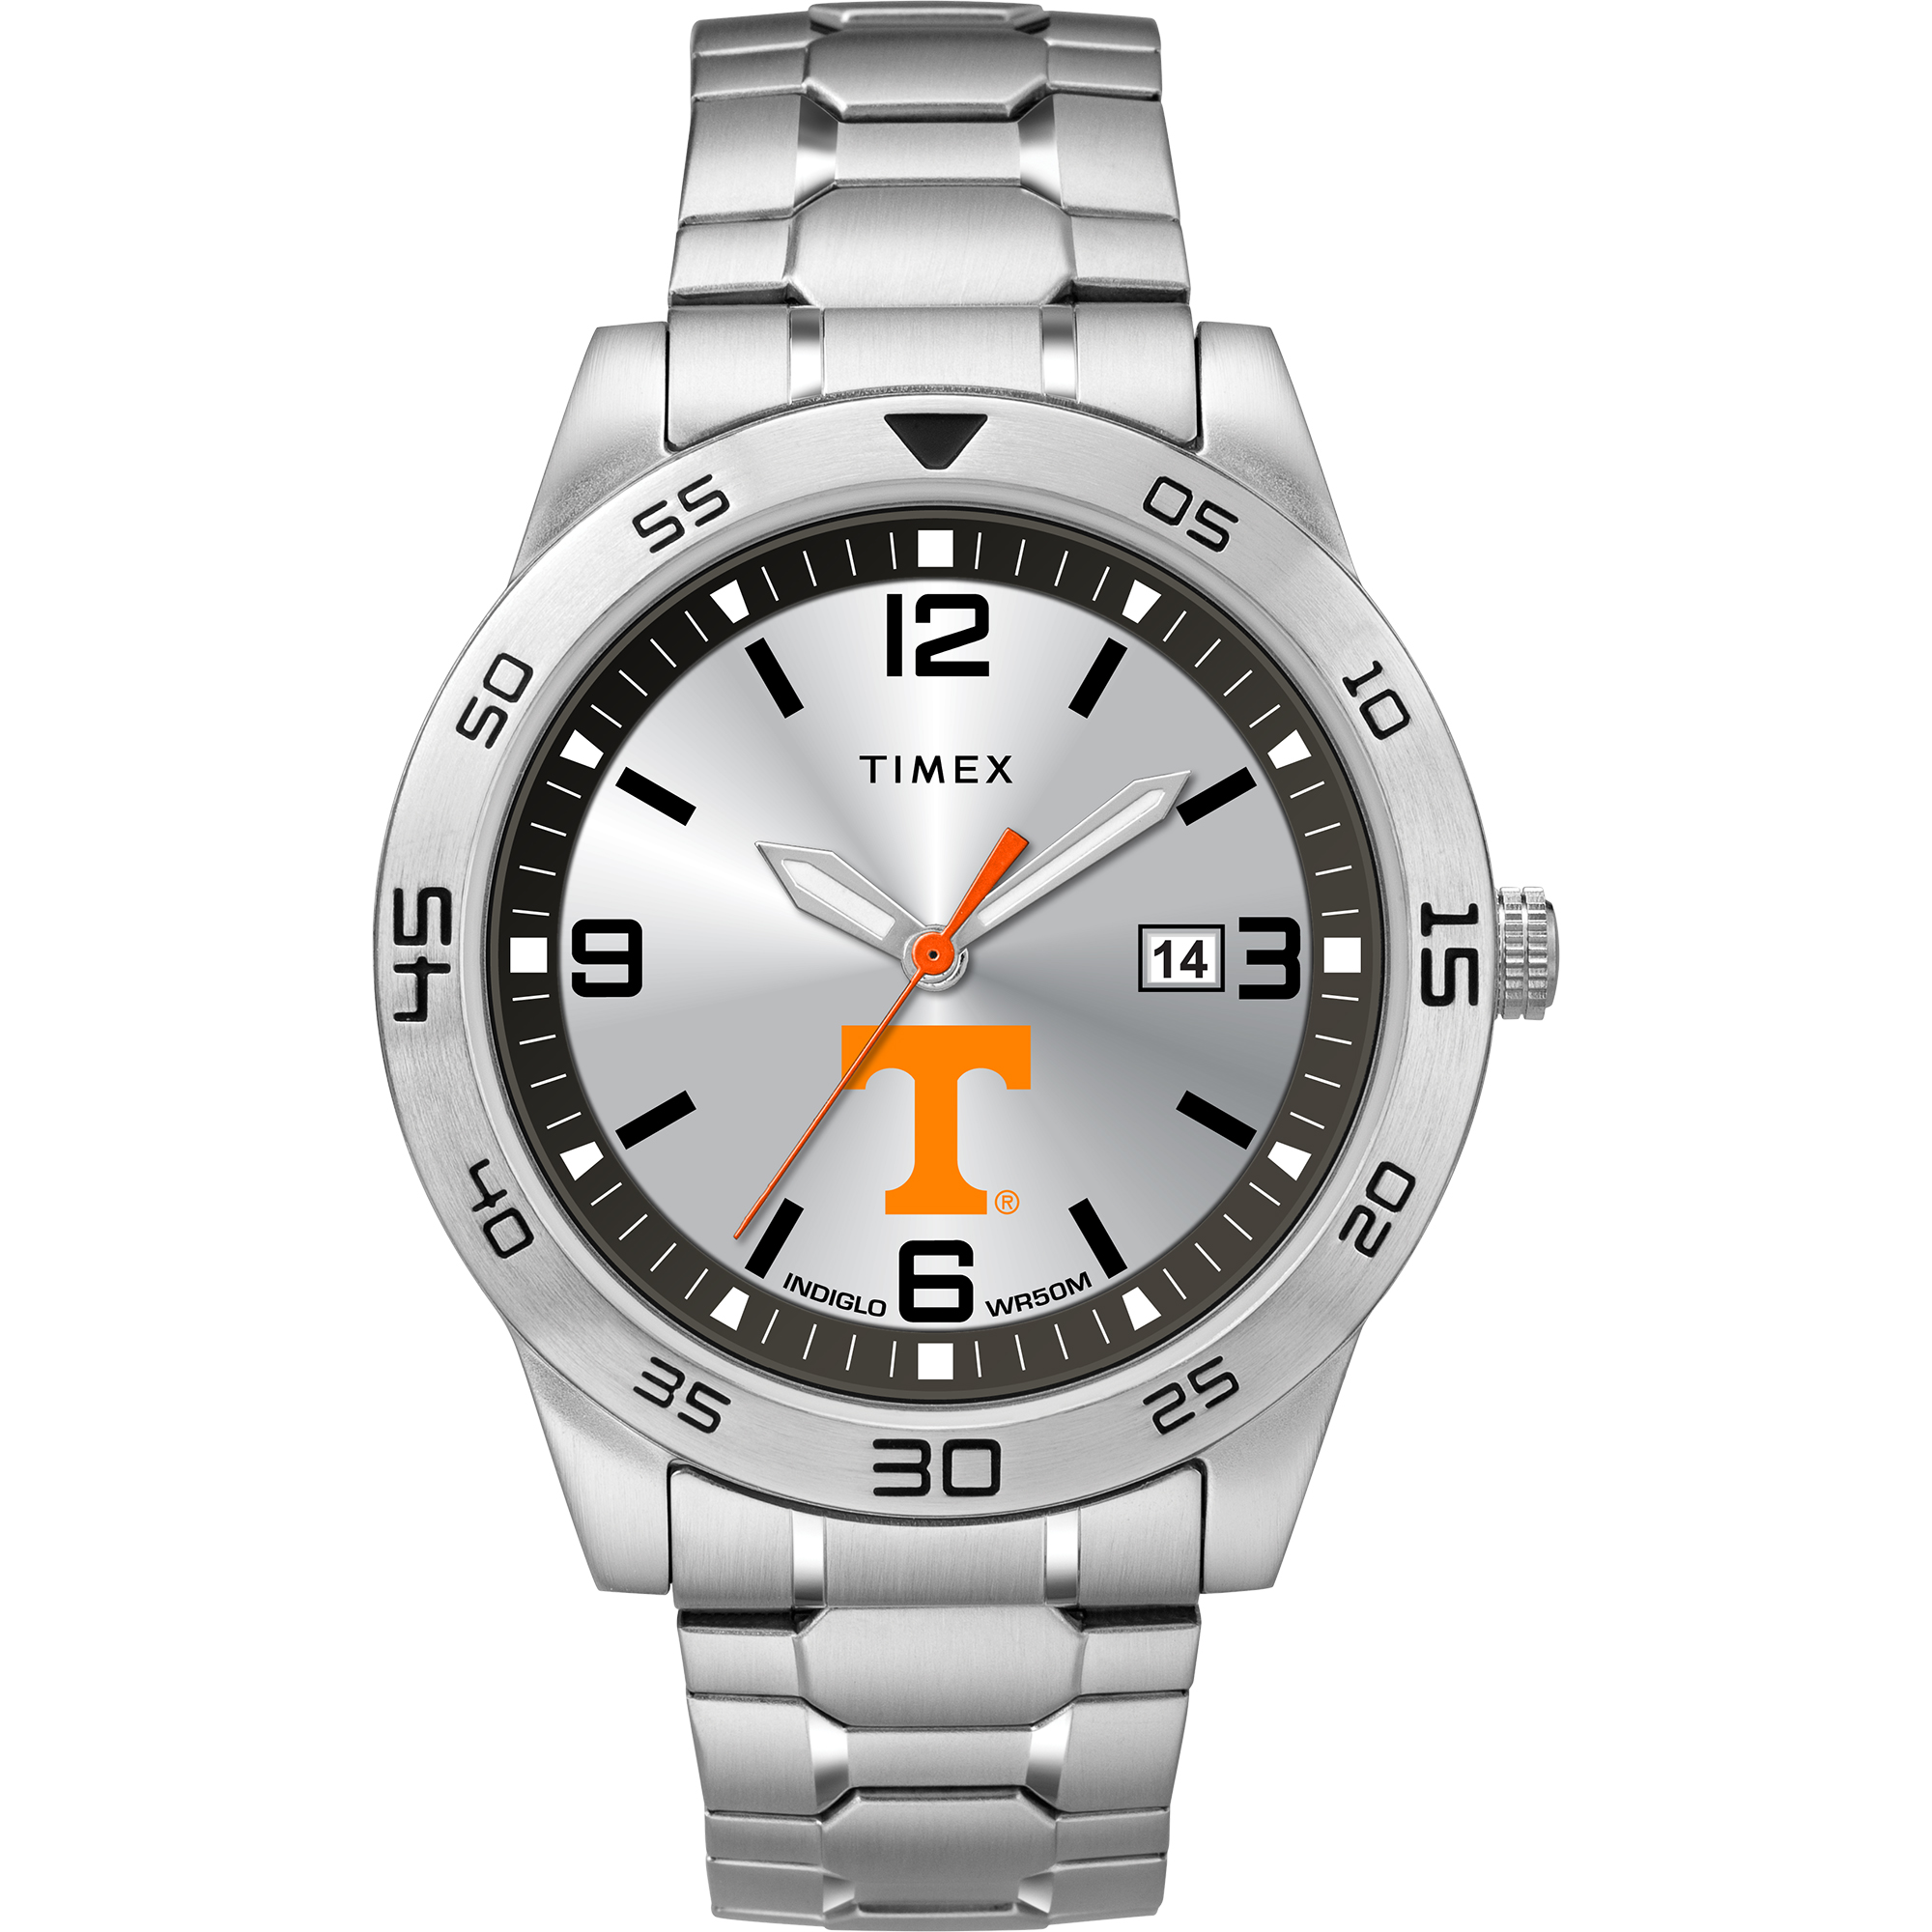 Timex - NCAA Tribute Collection Citation Men's Watch, University of Tennessee Volunteers